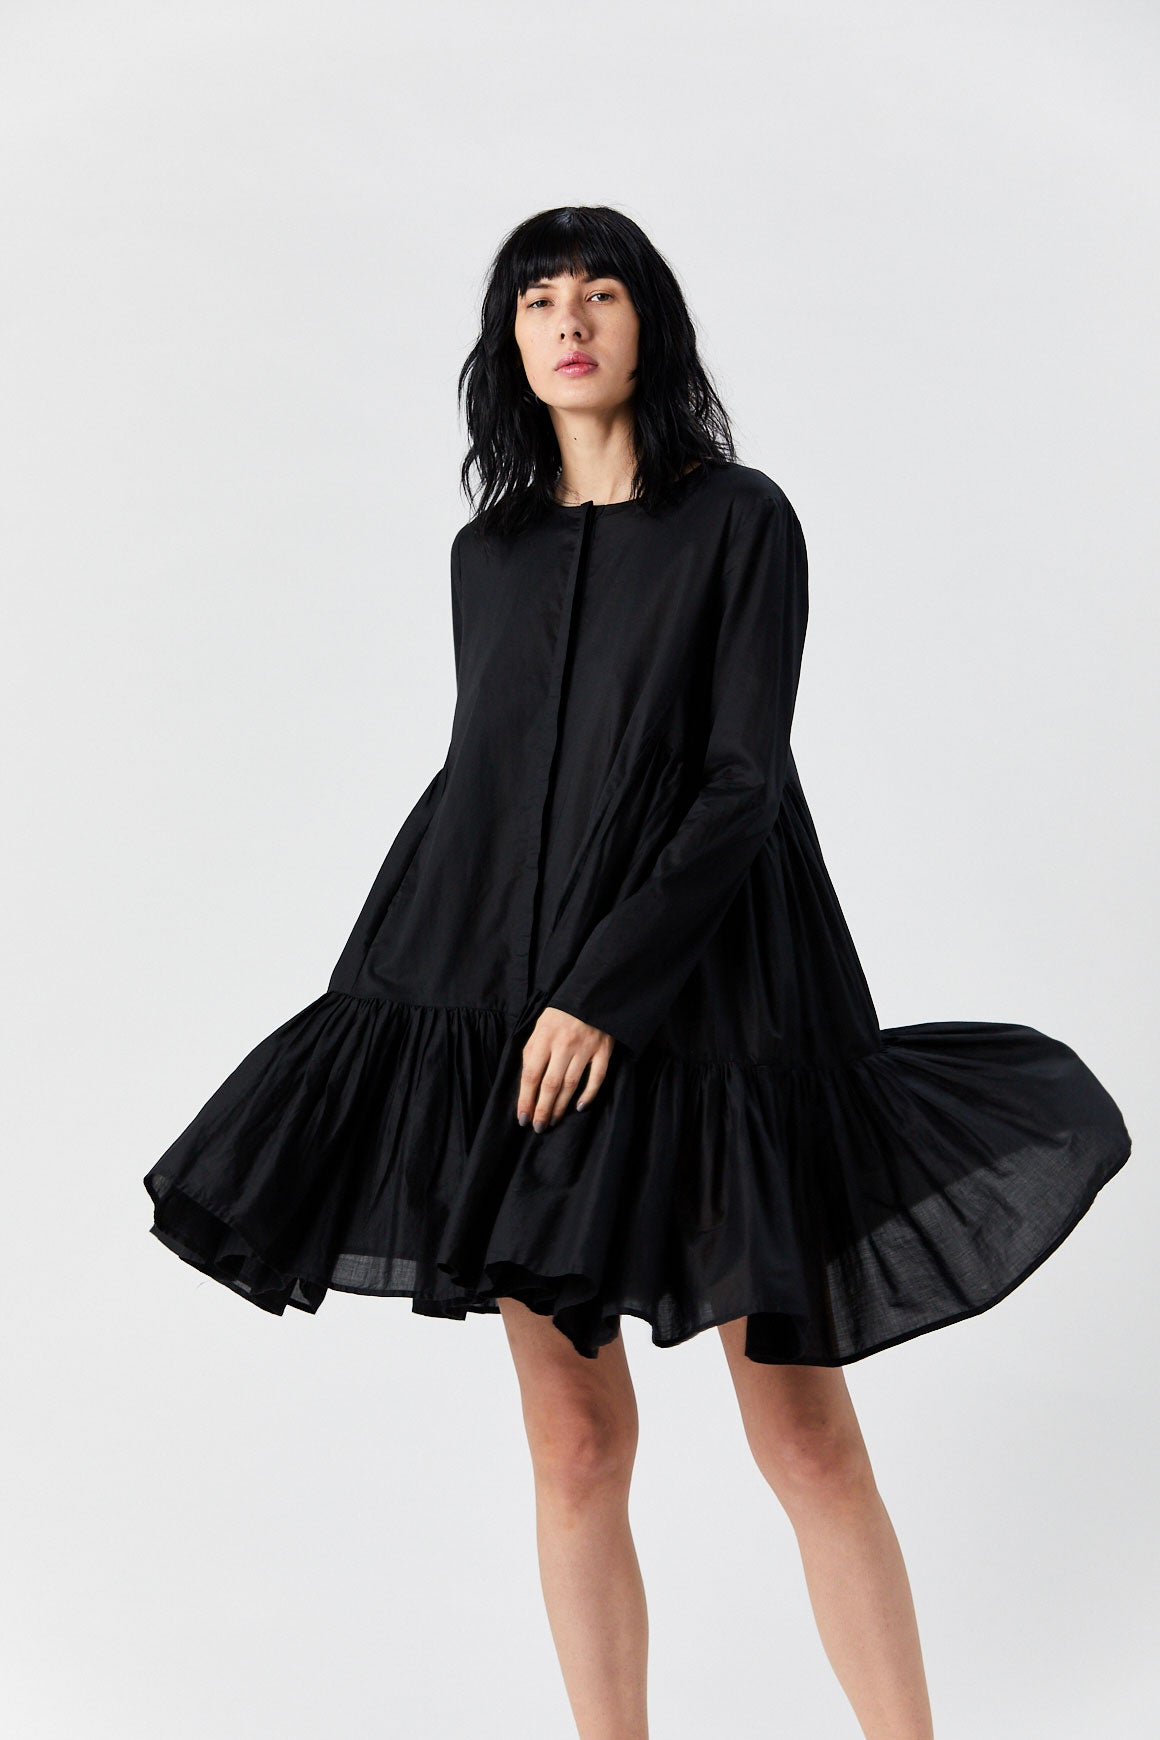 MERLETTE - Martel Dress, Black